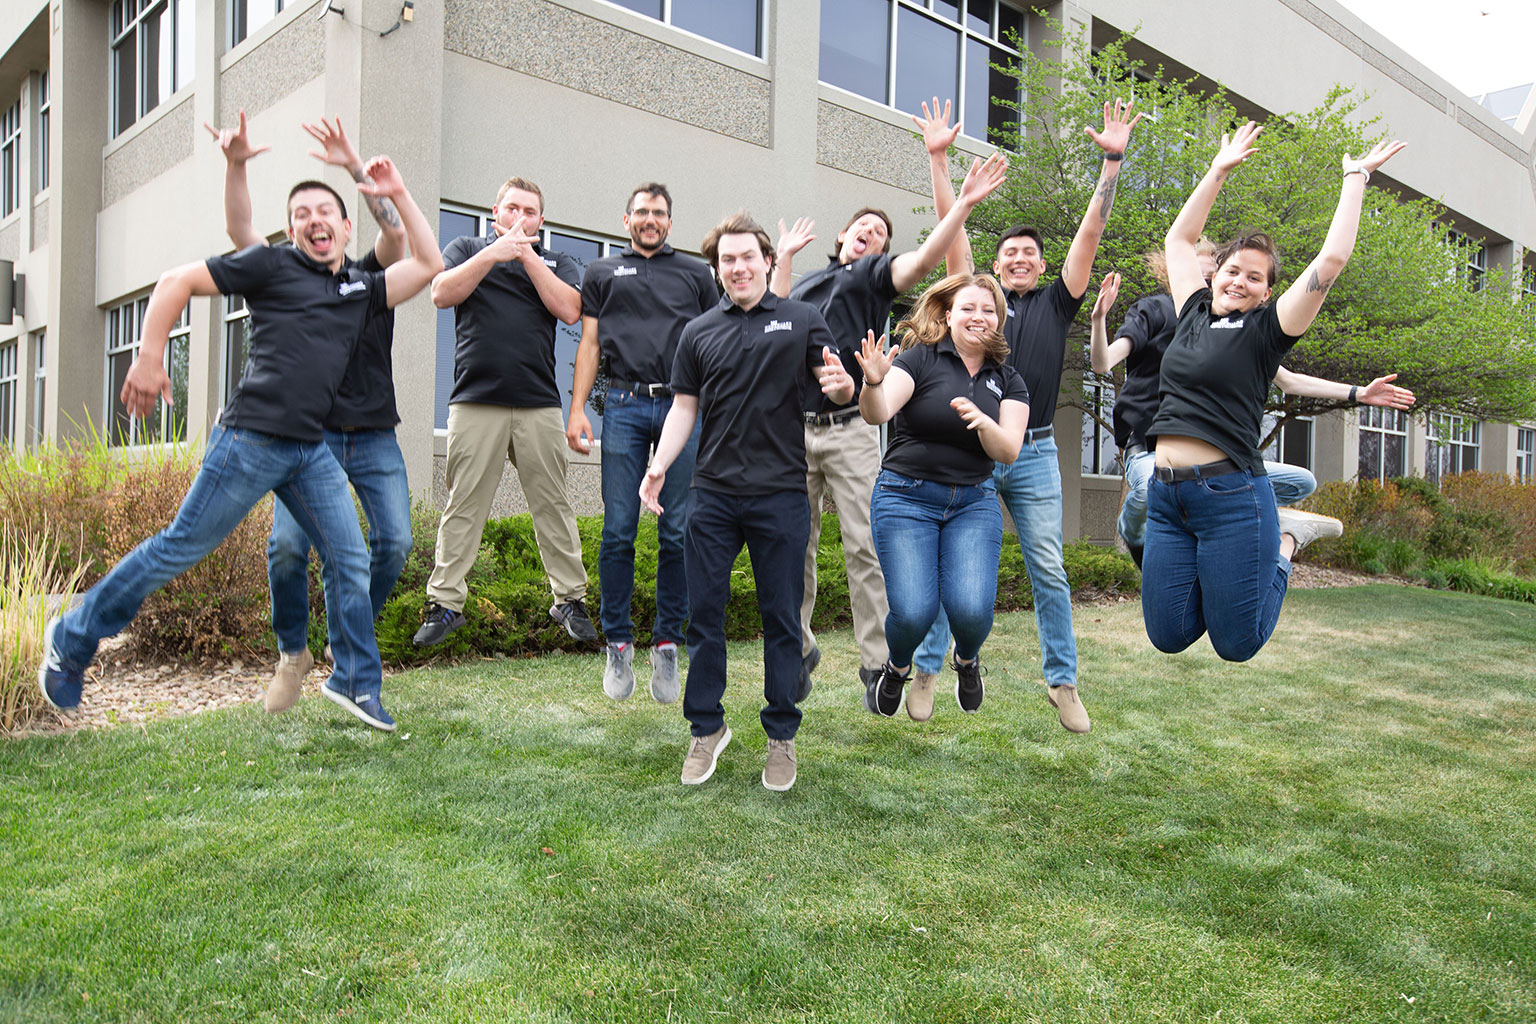 Homeguard Is Excited To Expand Our Sales Team And We Are Looking For Great Candidates Like You!